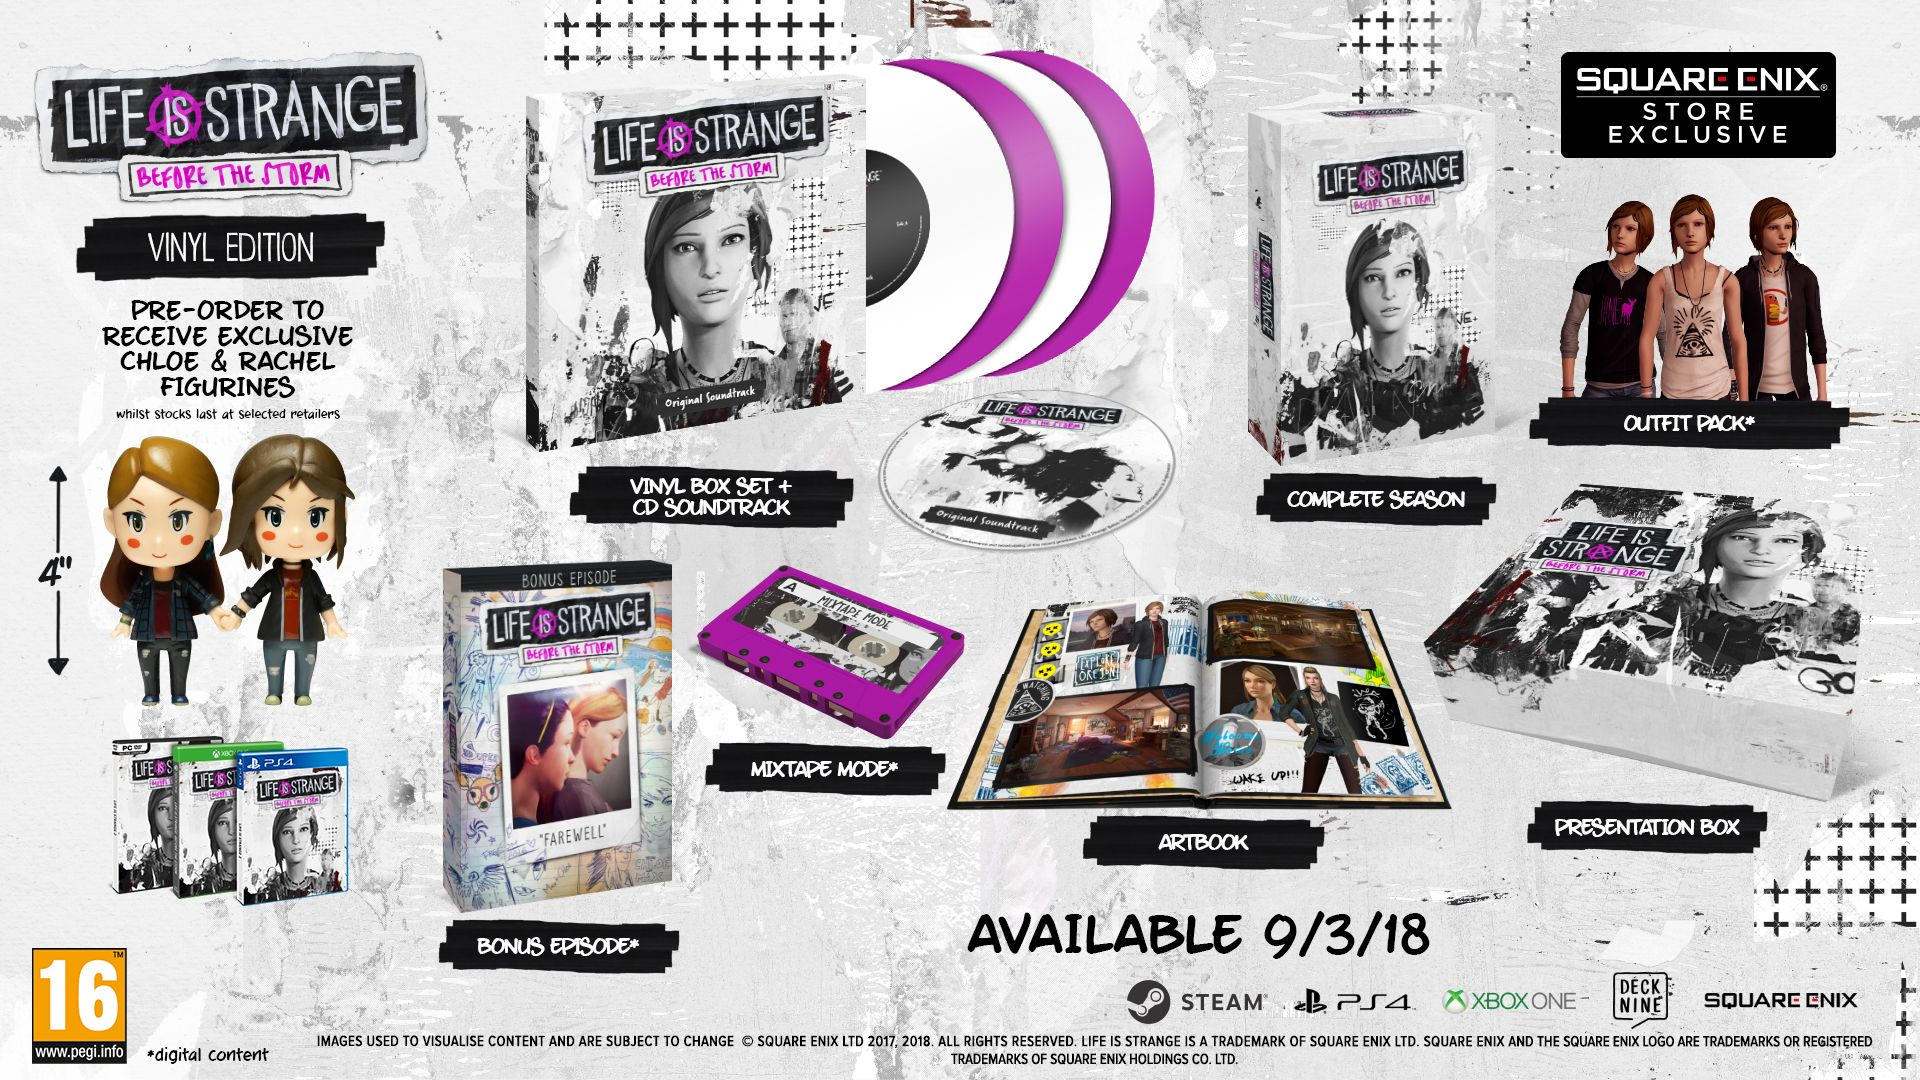 Annunciate le versioni fisiche di Life is Strange: Before the Storm e la data dell'episodio bonus Addio!